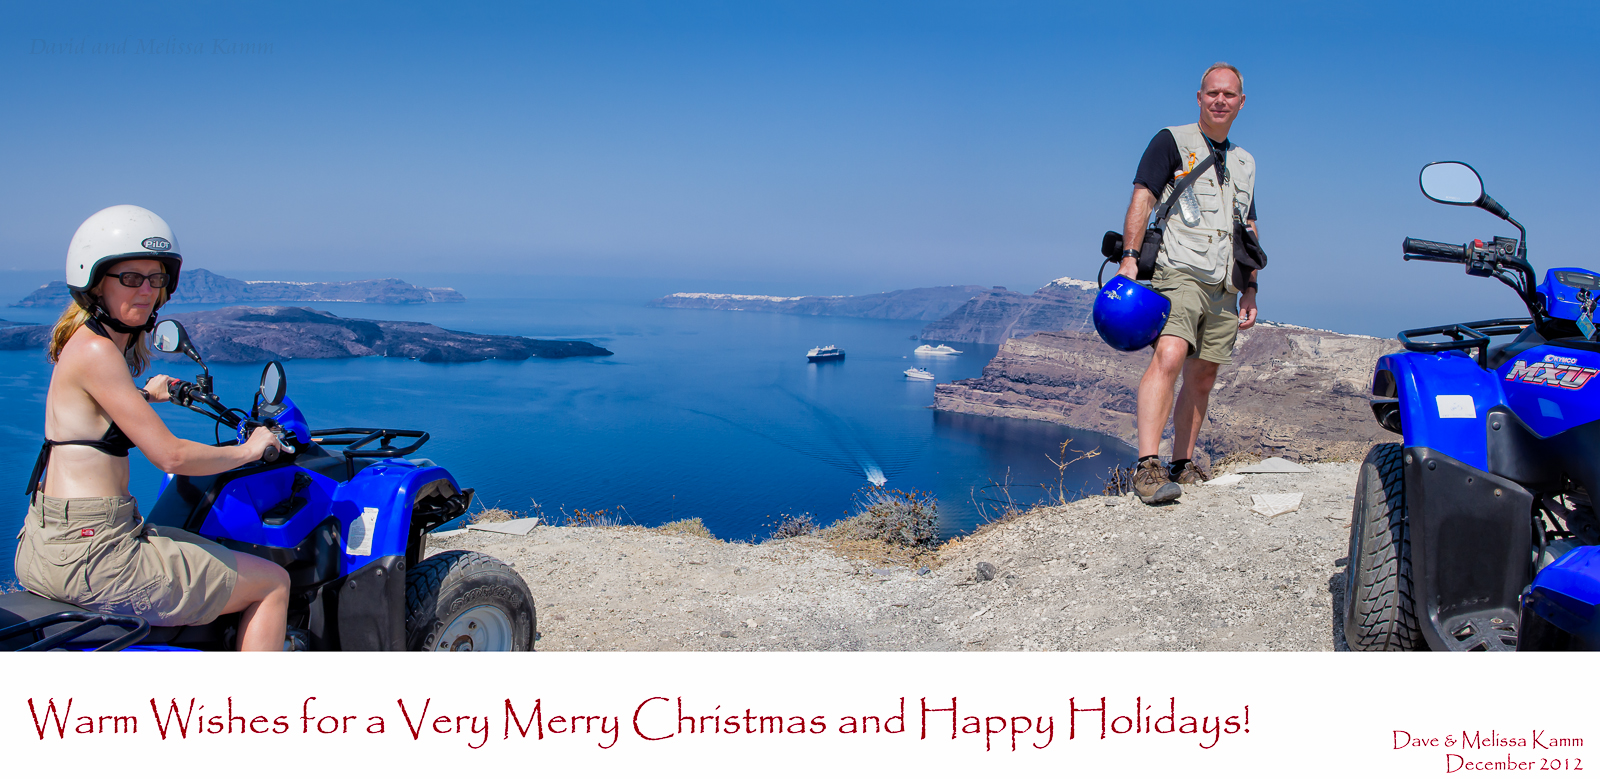 Holiday Greetings 2012 - Santorini, Greece